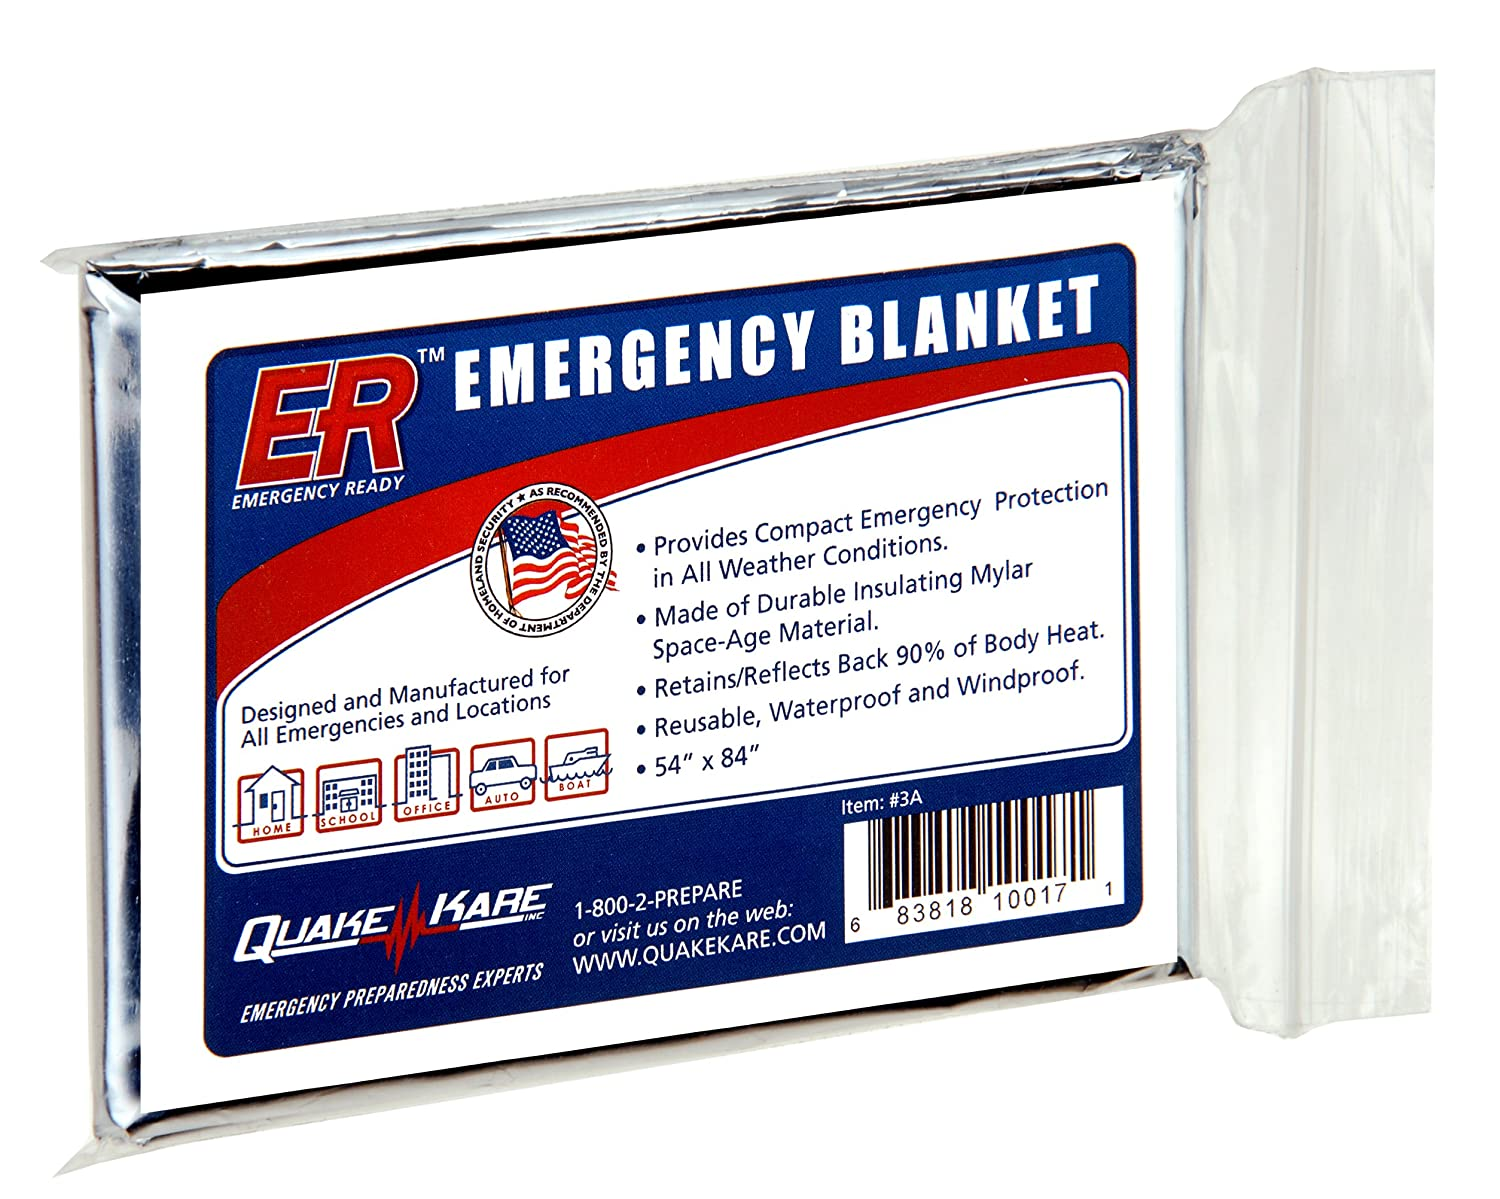 2ae22d8af7 Amazon.com   ER Emergency Ready 3A Thermal Mylar Blanket   Emergency  Camping Blankets   Garden   Outdoor